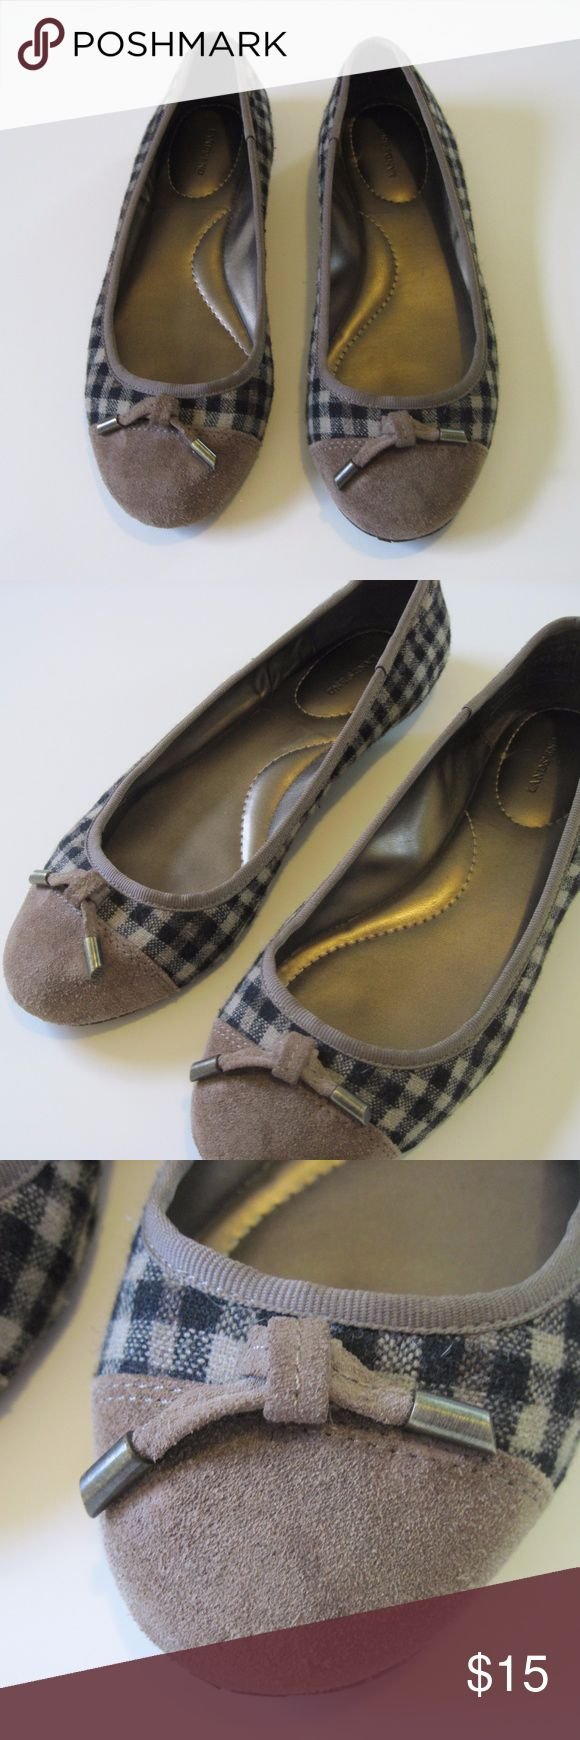 Lands End Plaid and Suede Ballet Flats Brass Caps Classic ballet flats from Lands End. The upper is a wool plaid of cream, tan, and dark blue with a suede contrast at the toe. Accent suede ties have brass caps for an understated bling. The inside and the uppers are are in good shape, the soles show some wear which I tried to show in the pictures. Lands' End Shoes Flats & Loafers